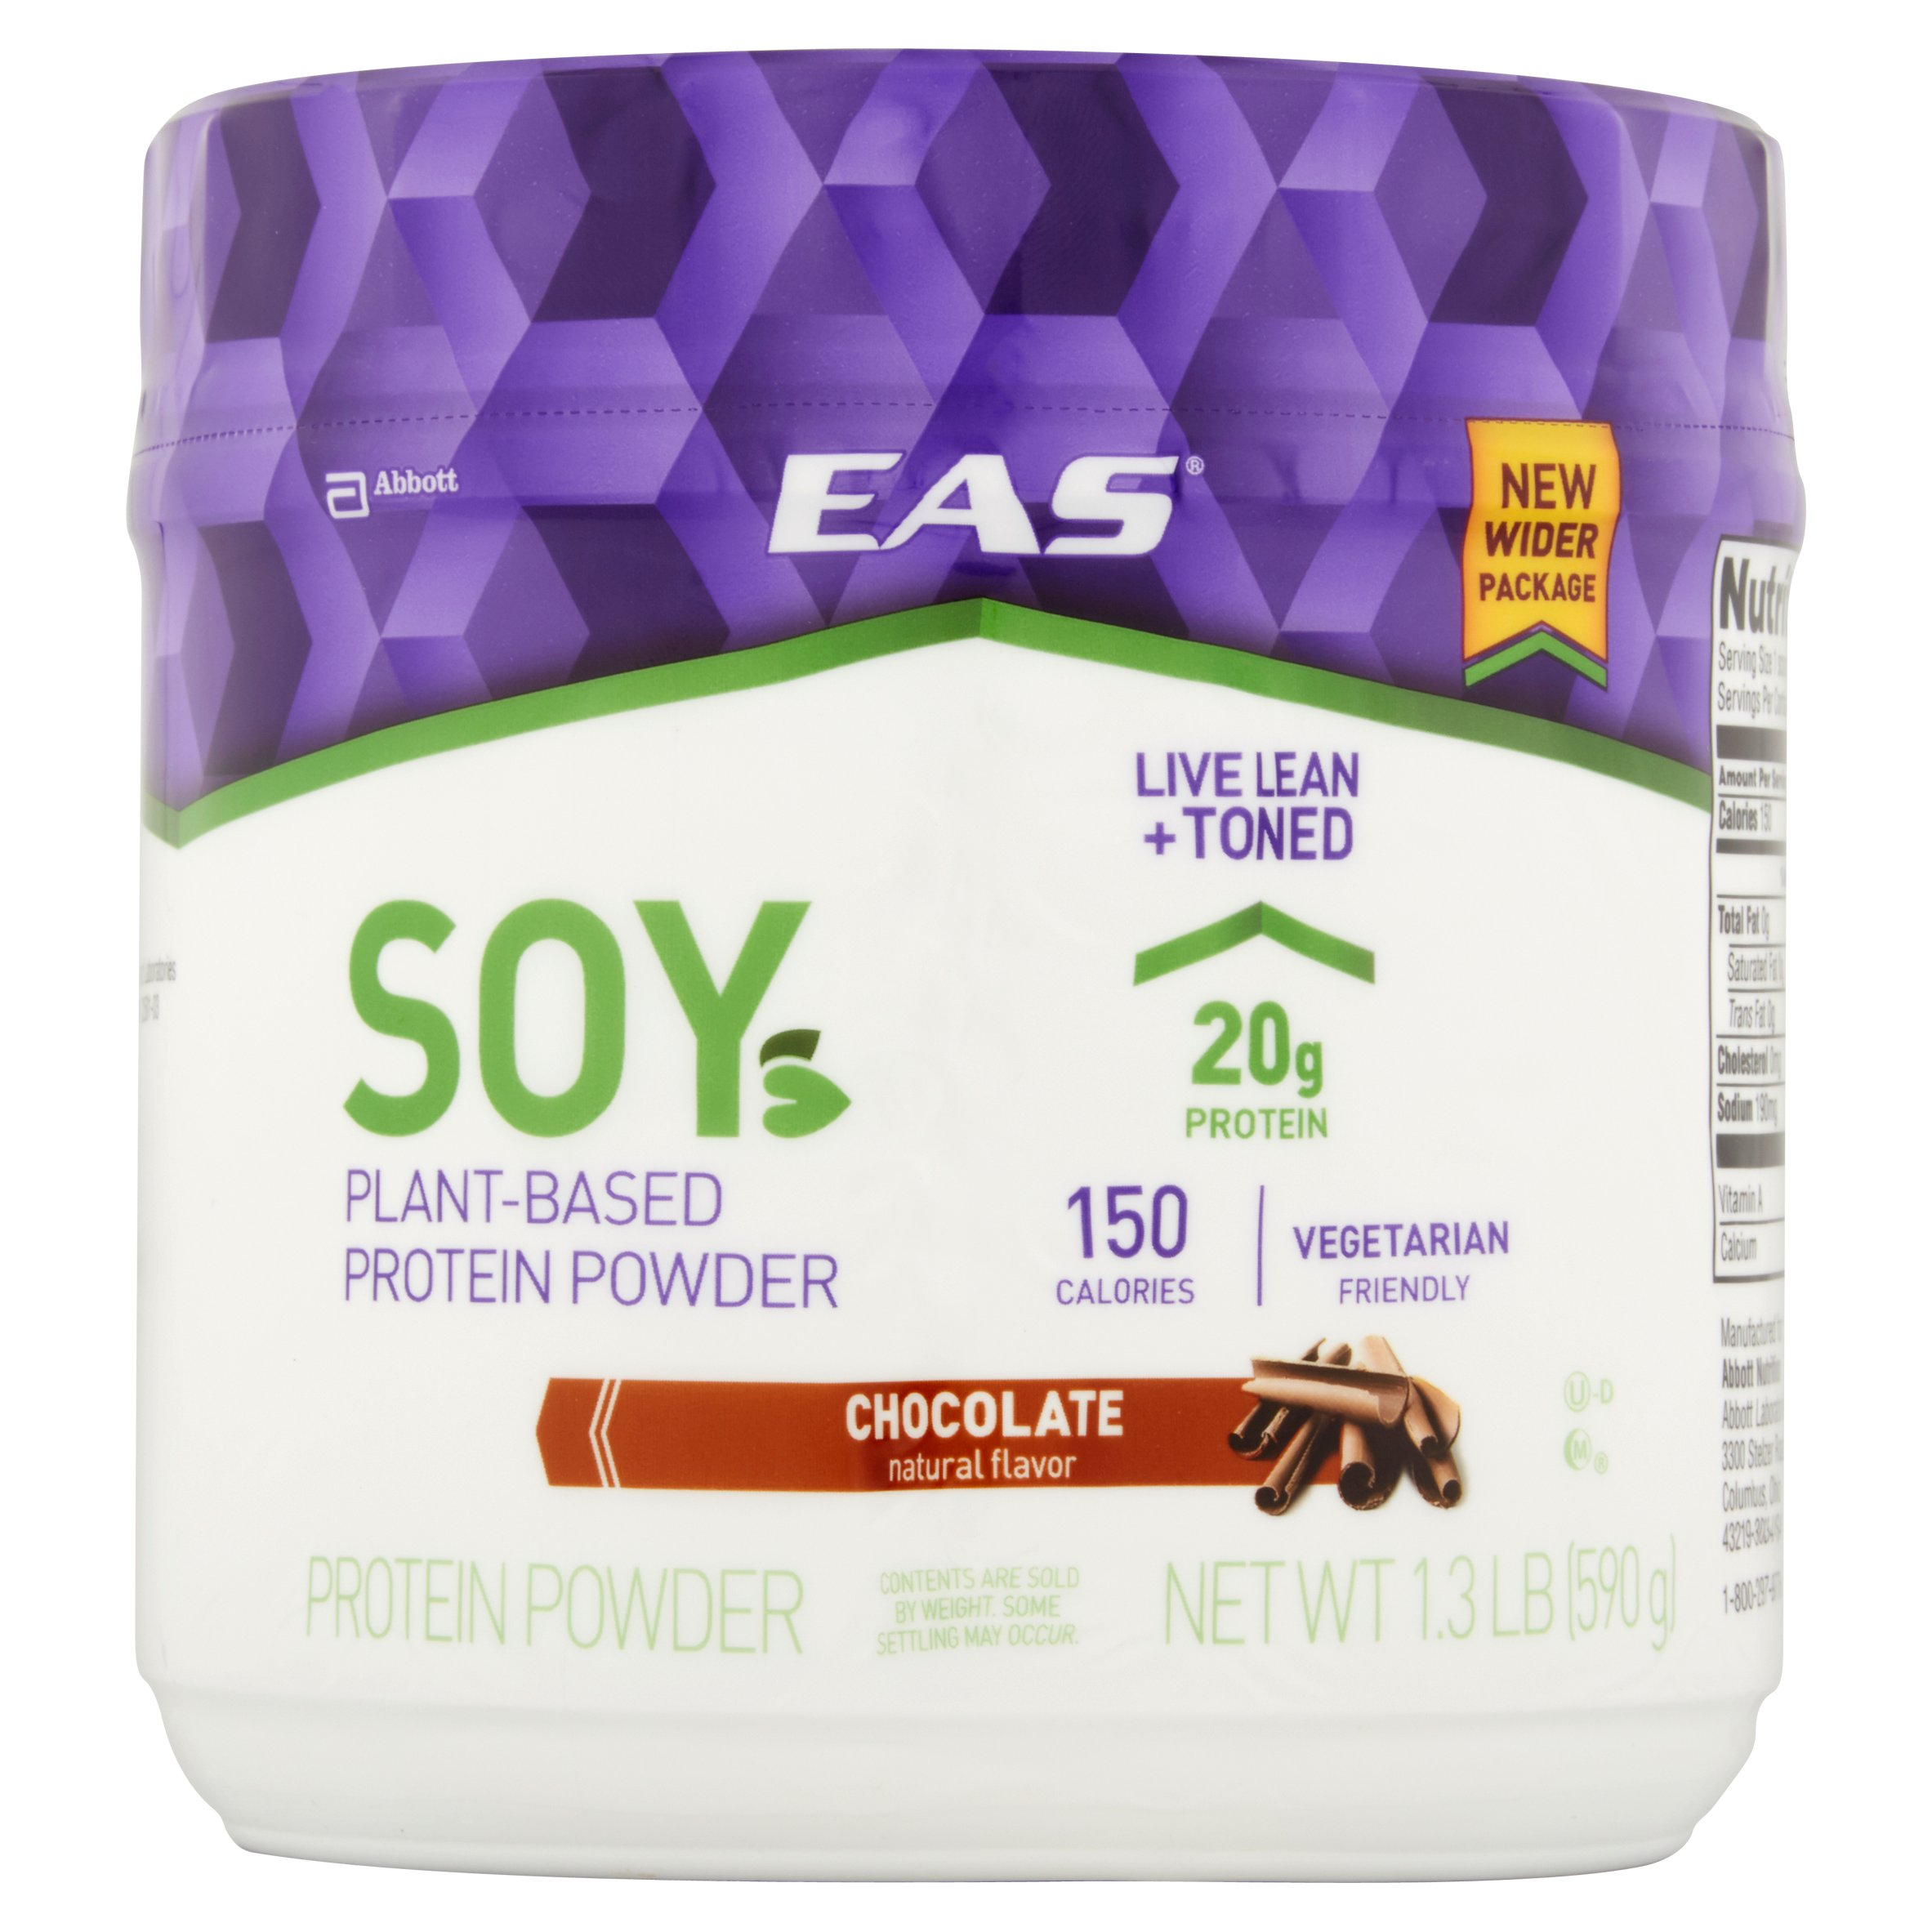 Eas soy protein powder review